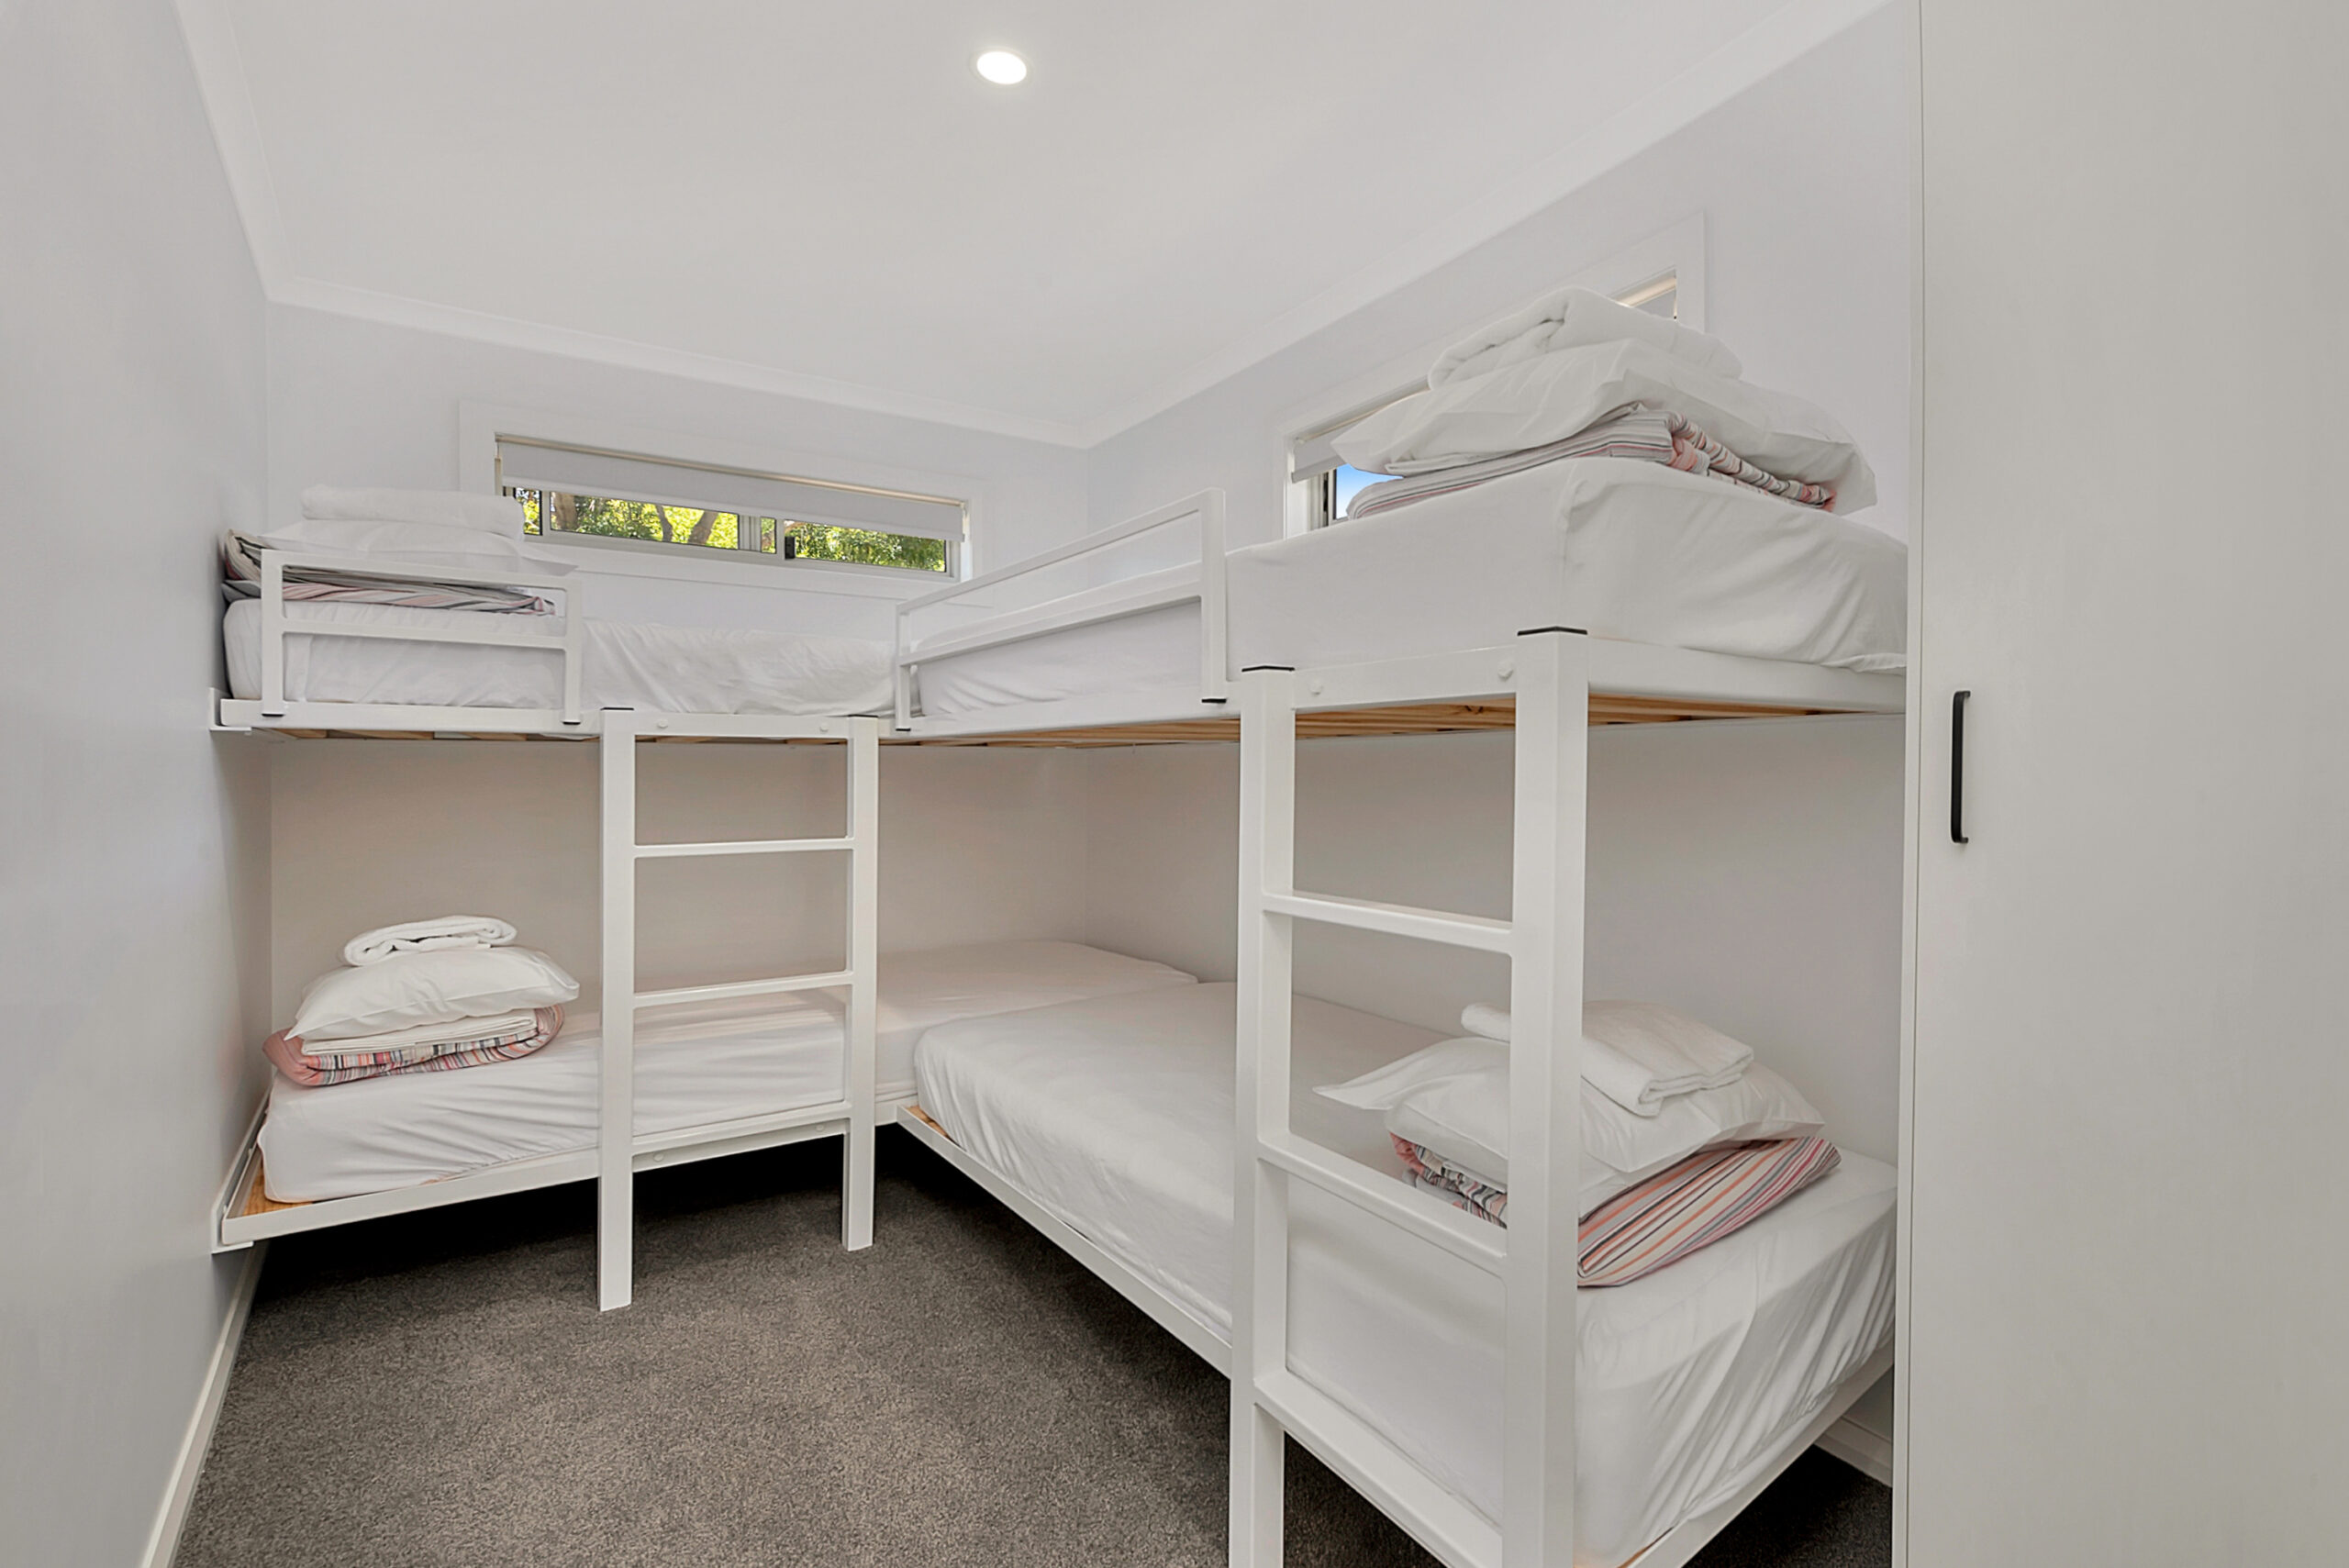 BUNK BED FURNITURE SUPPLIERS